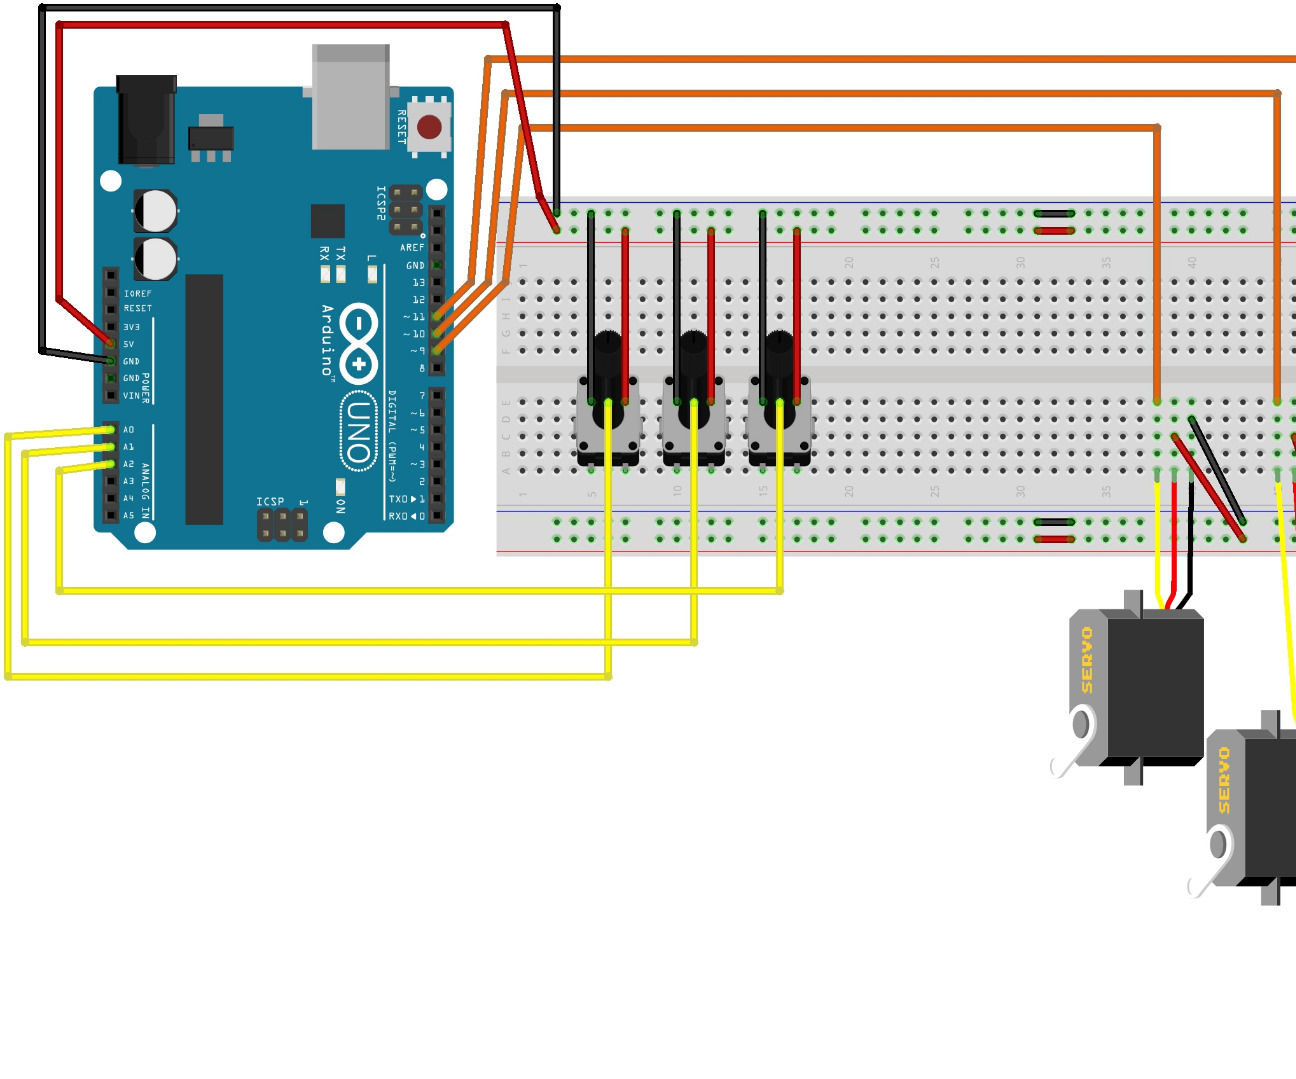 controlling 3 servo motors with 3 potentiometers and an arduino [ 1296 x 1079 Pixel ]